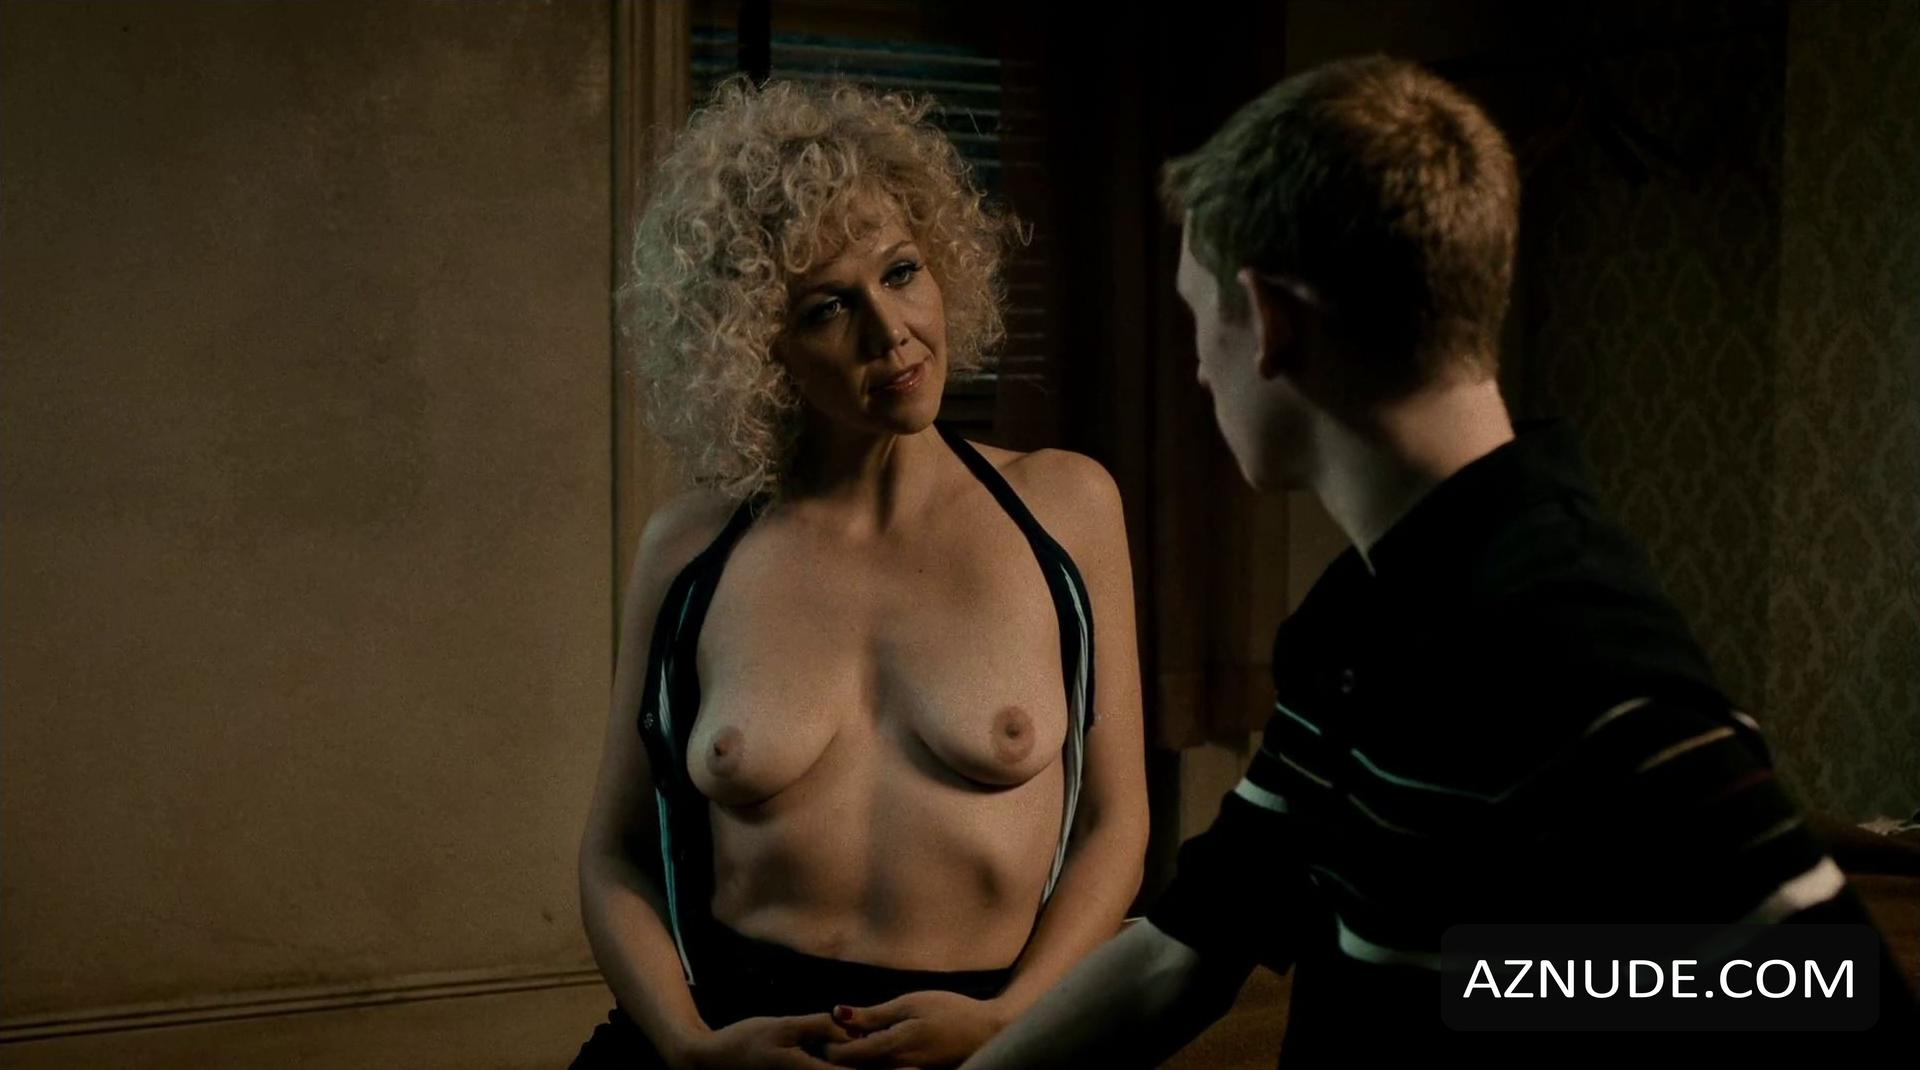 image Maggie gyllenhaal strip search